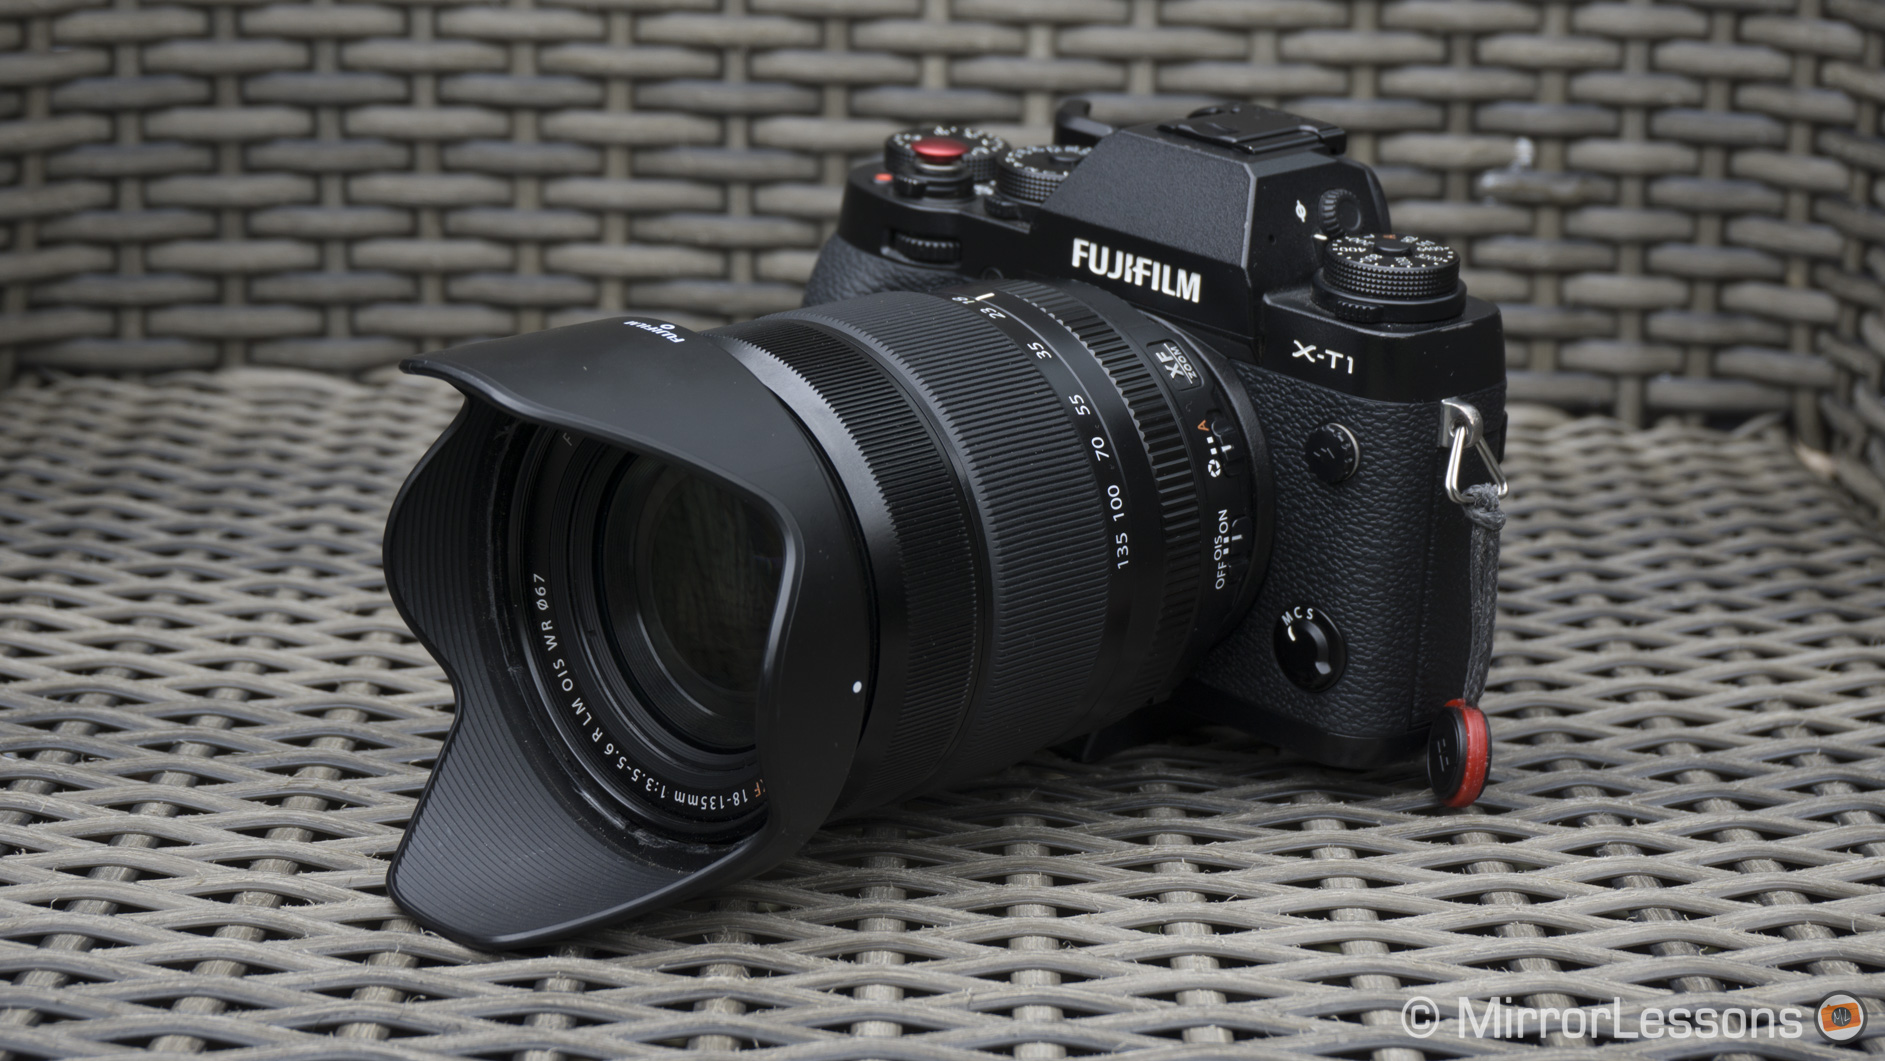 fujifilm 18-135mm review